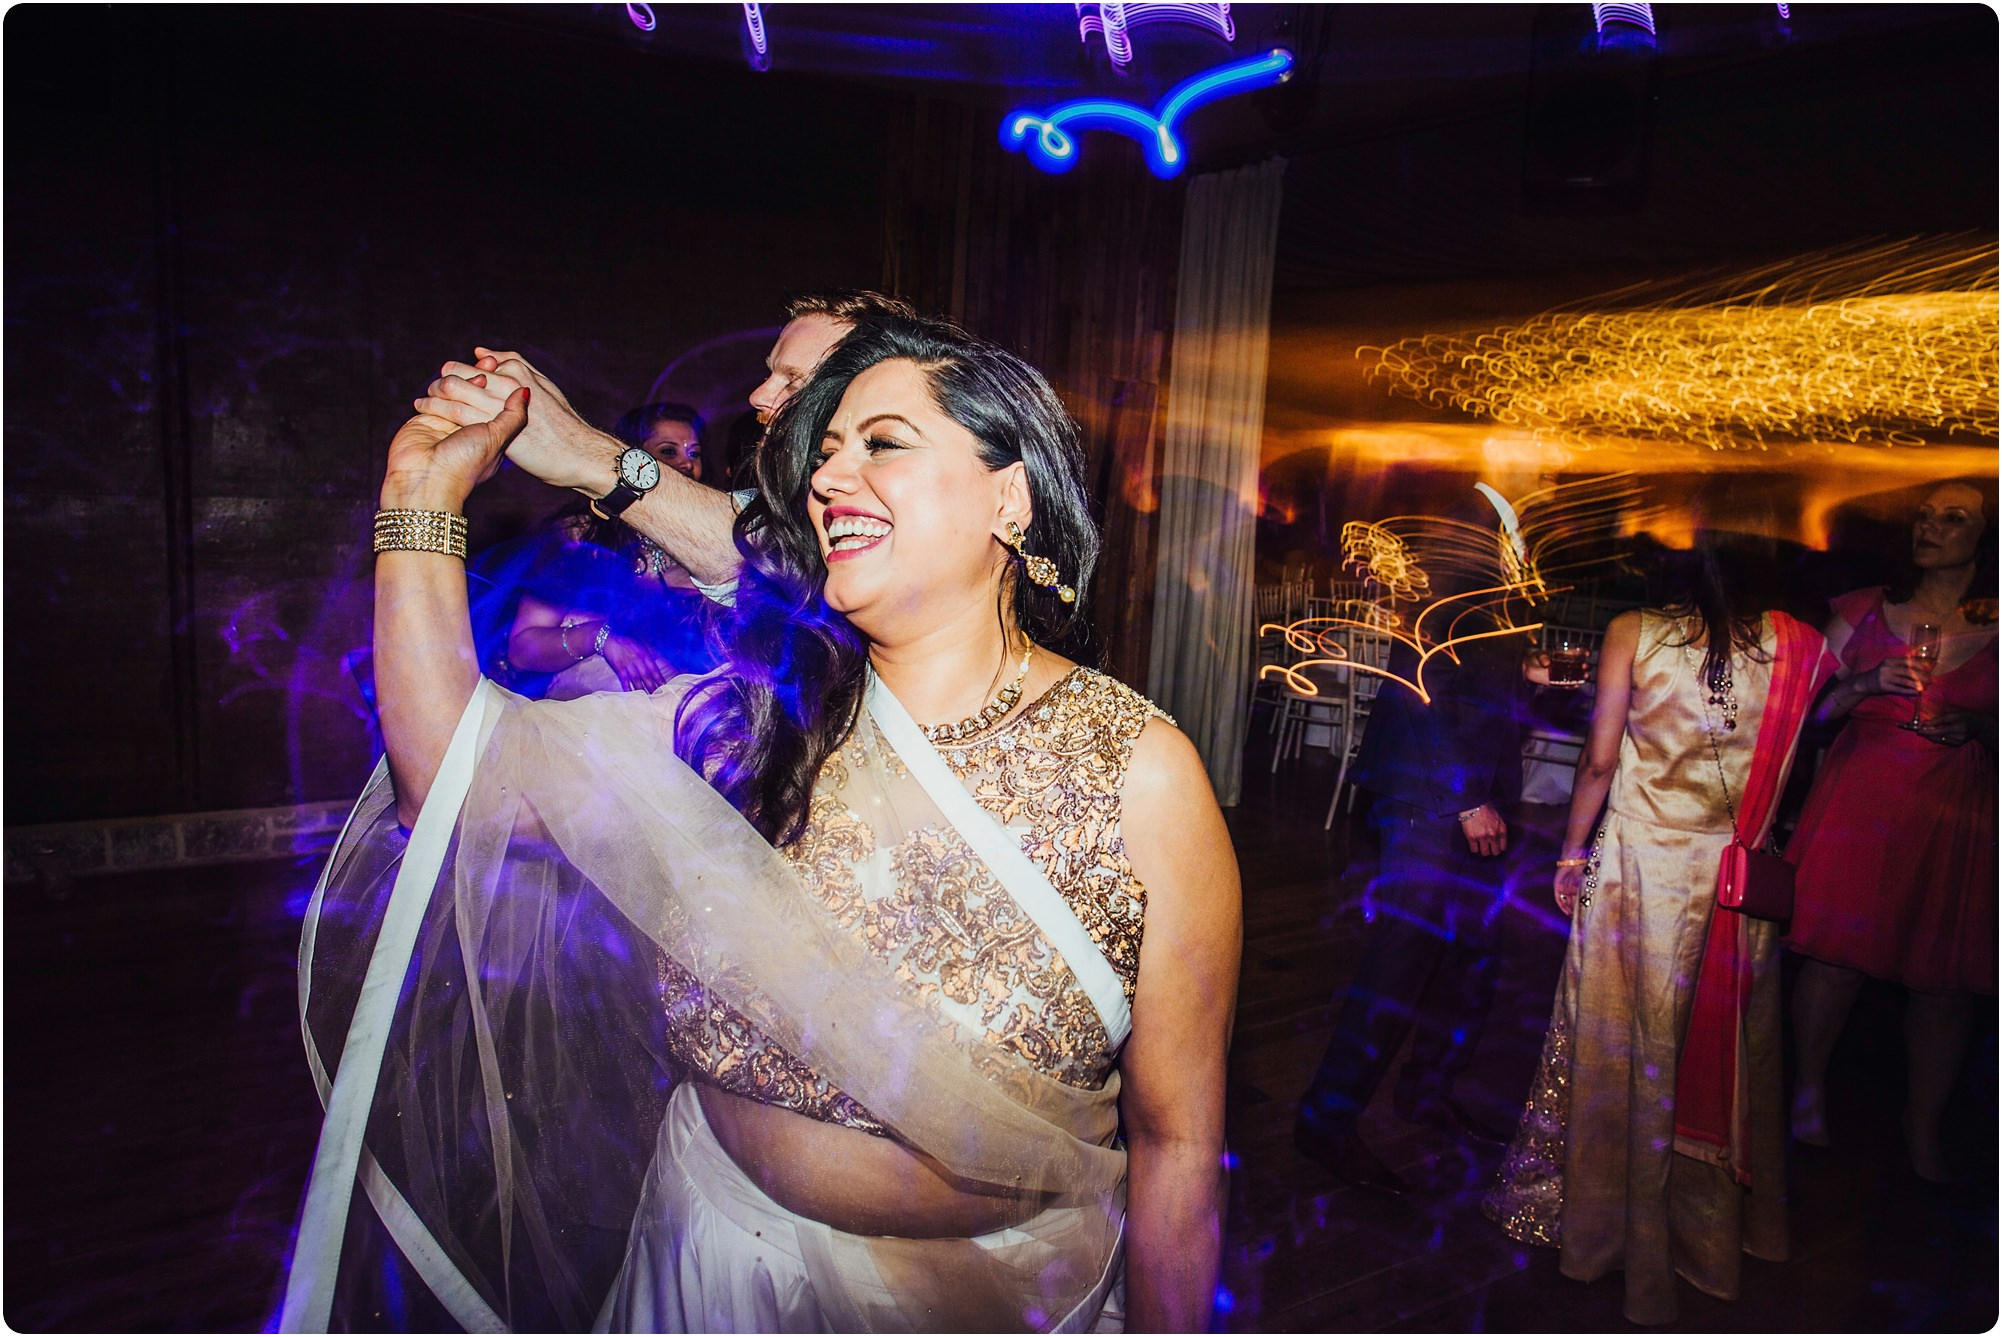 beautiful Indian dress and dancing at a an Elmore Court Wedding]]